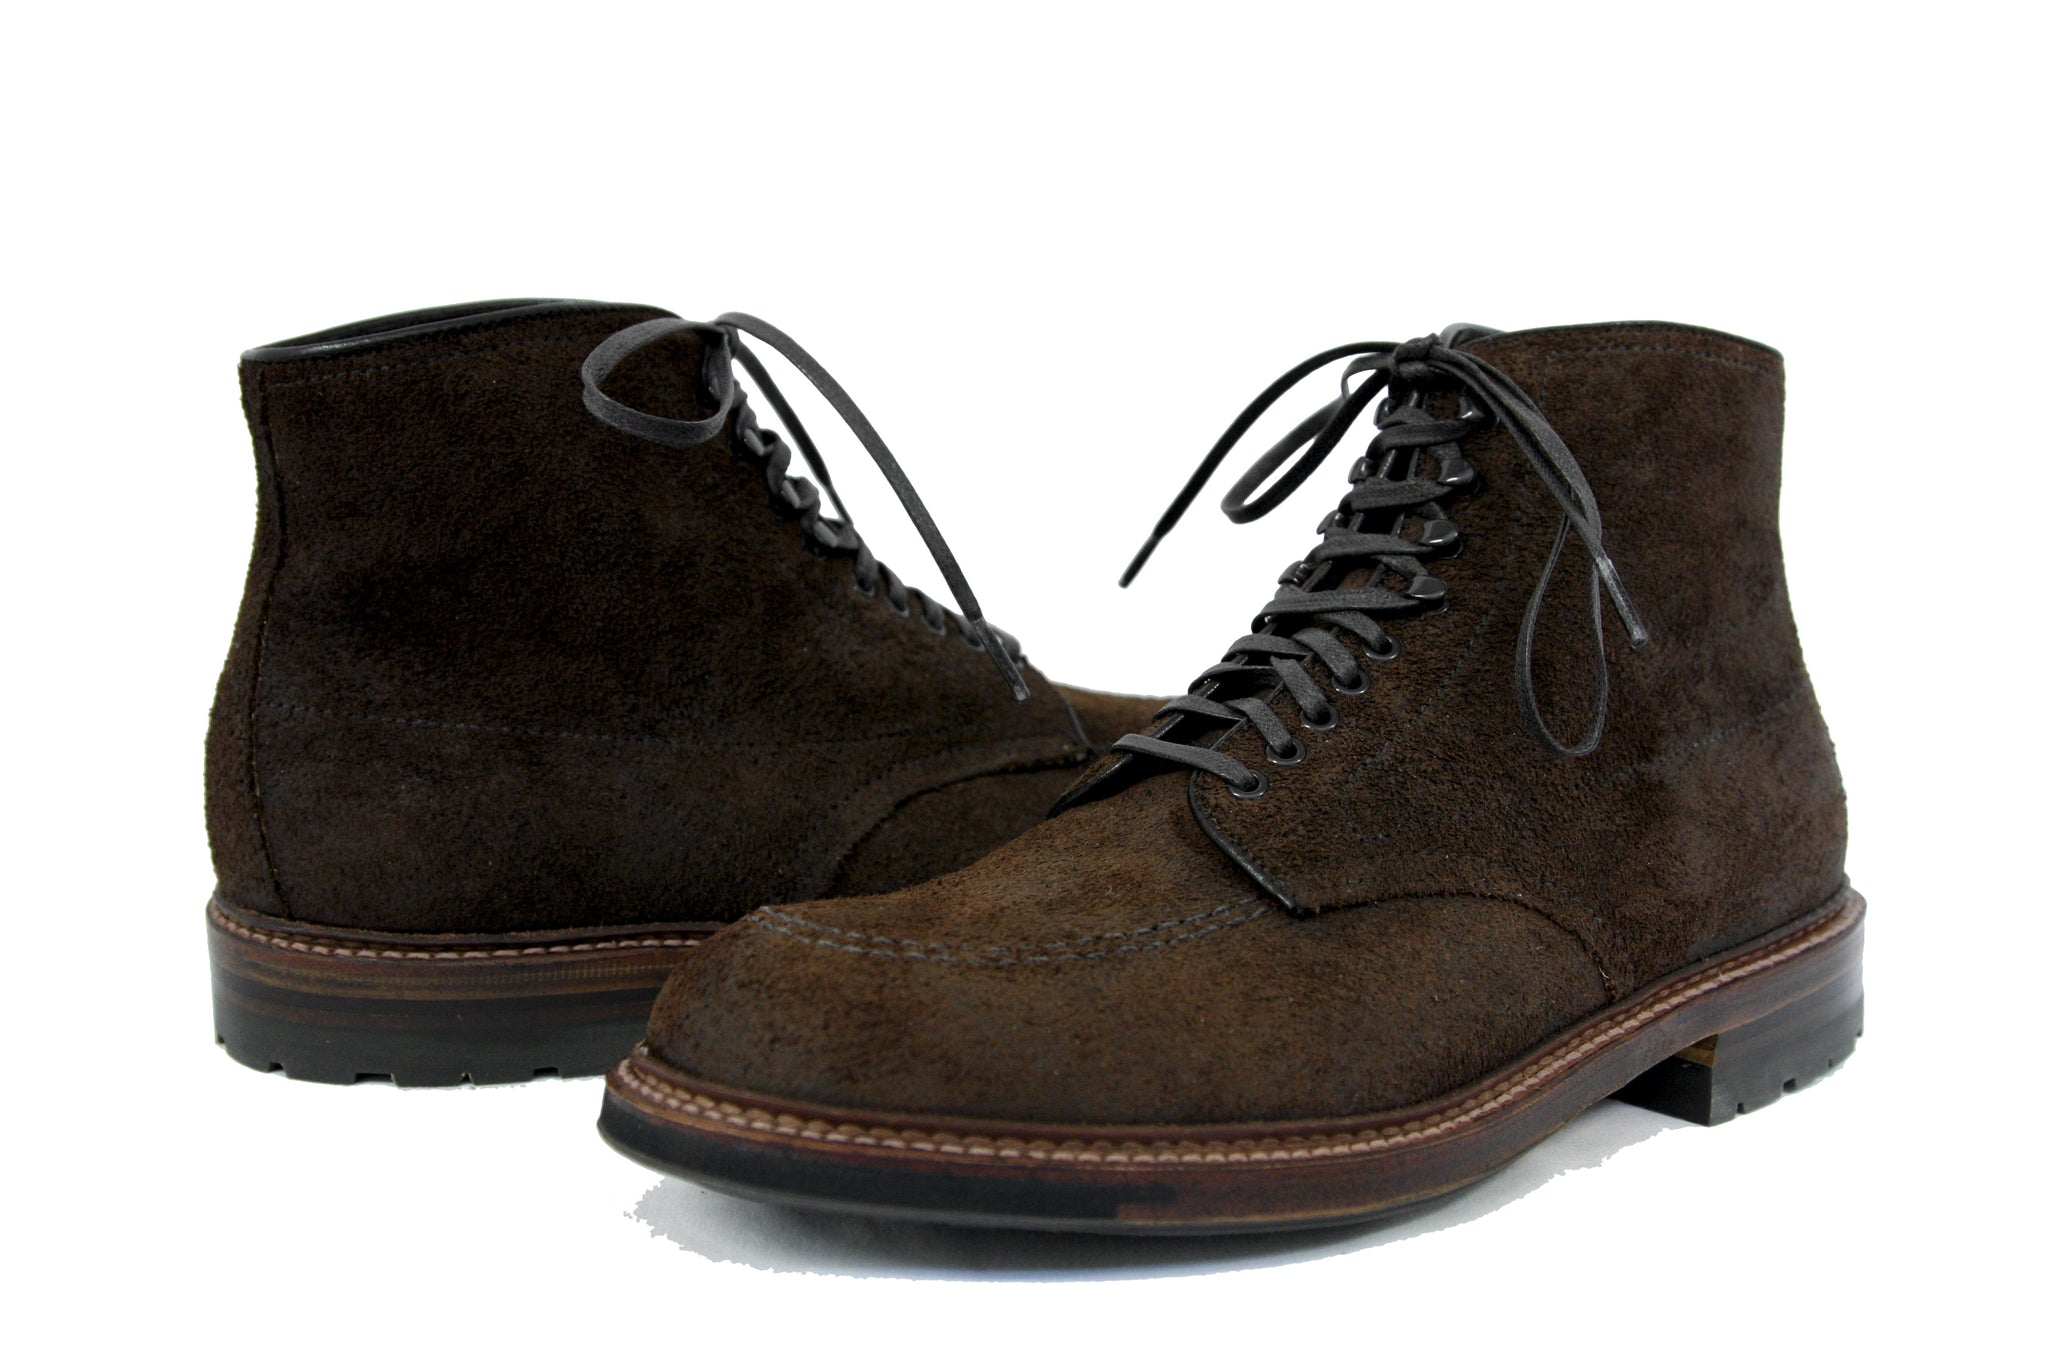 Alden Shoes Indie True Balance Workboot Tobacco Chamois Commando Sole